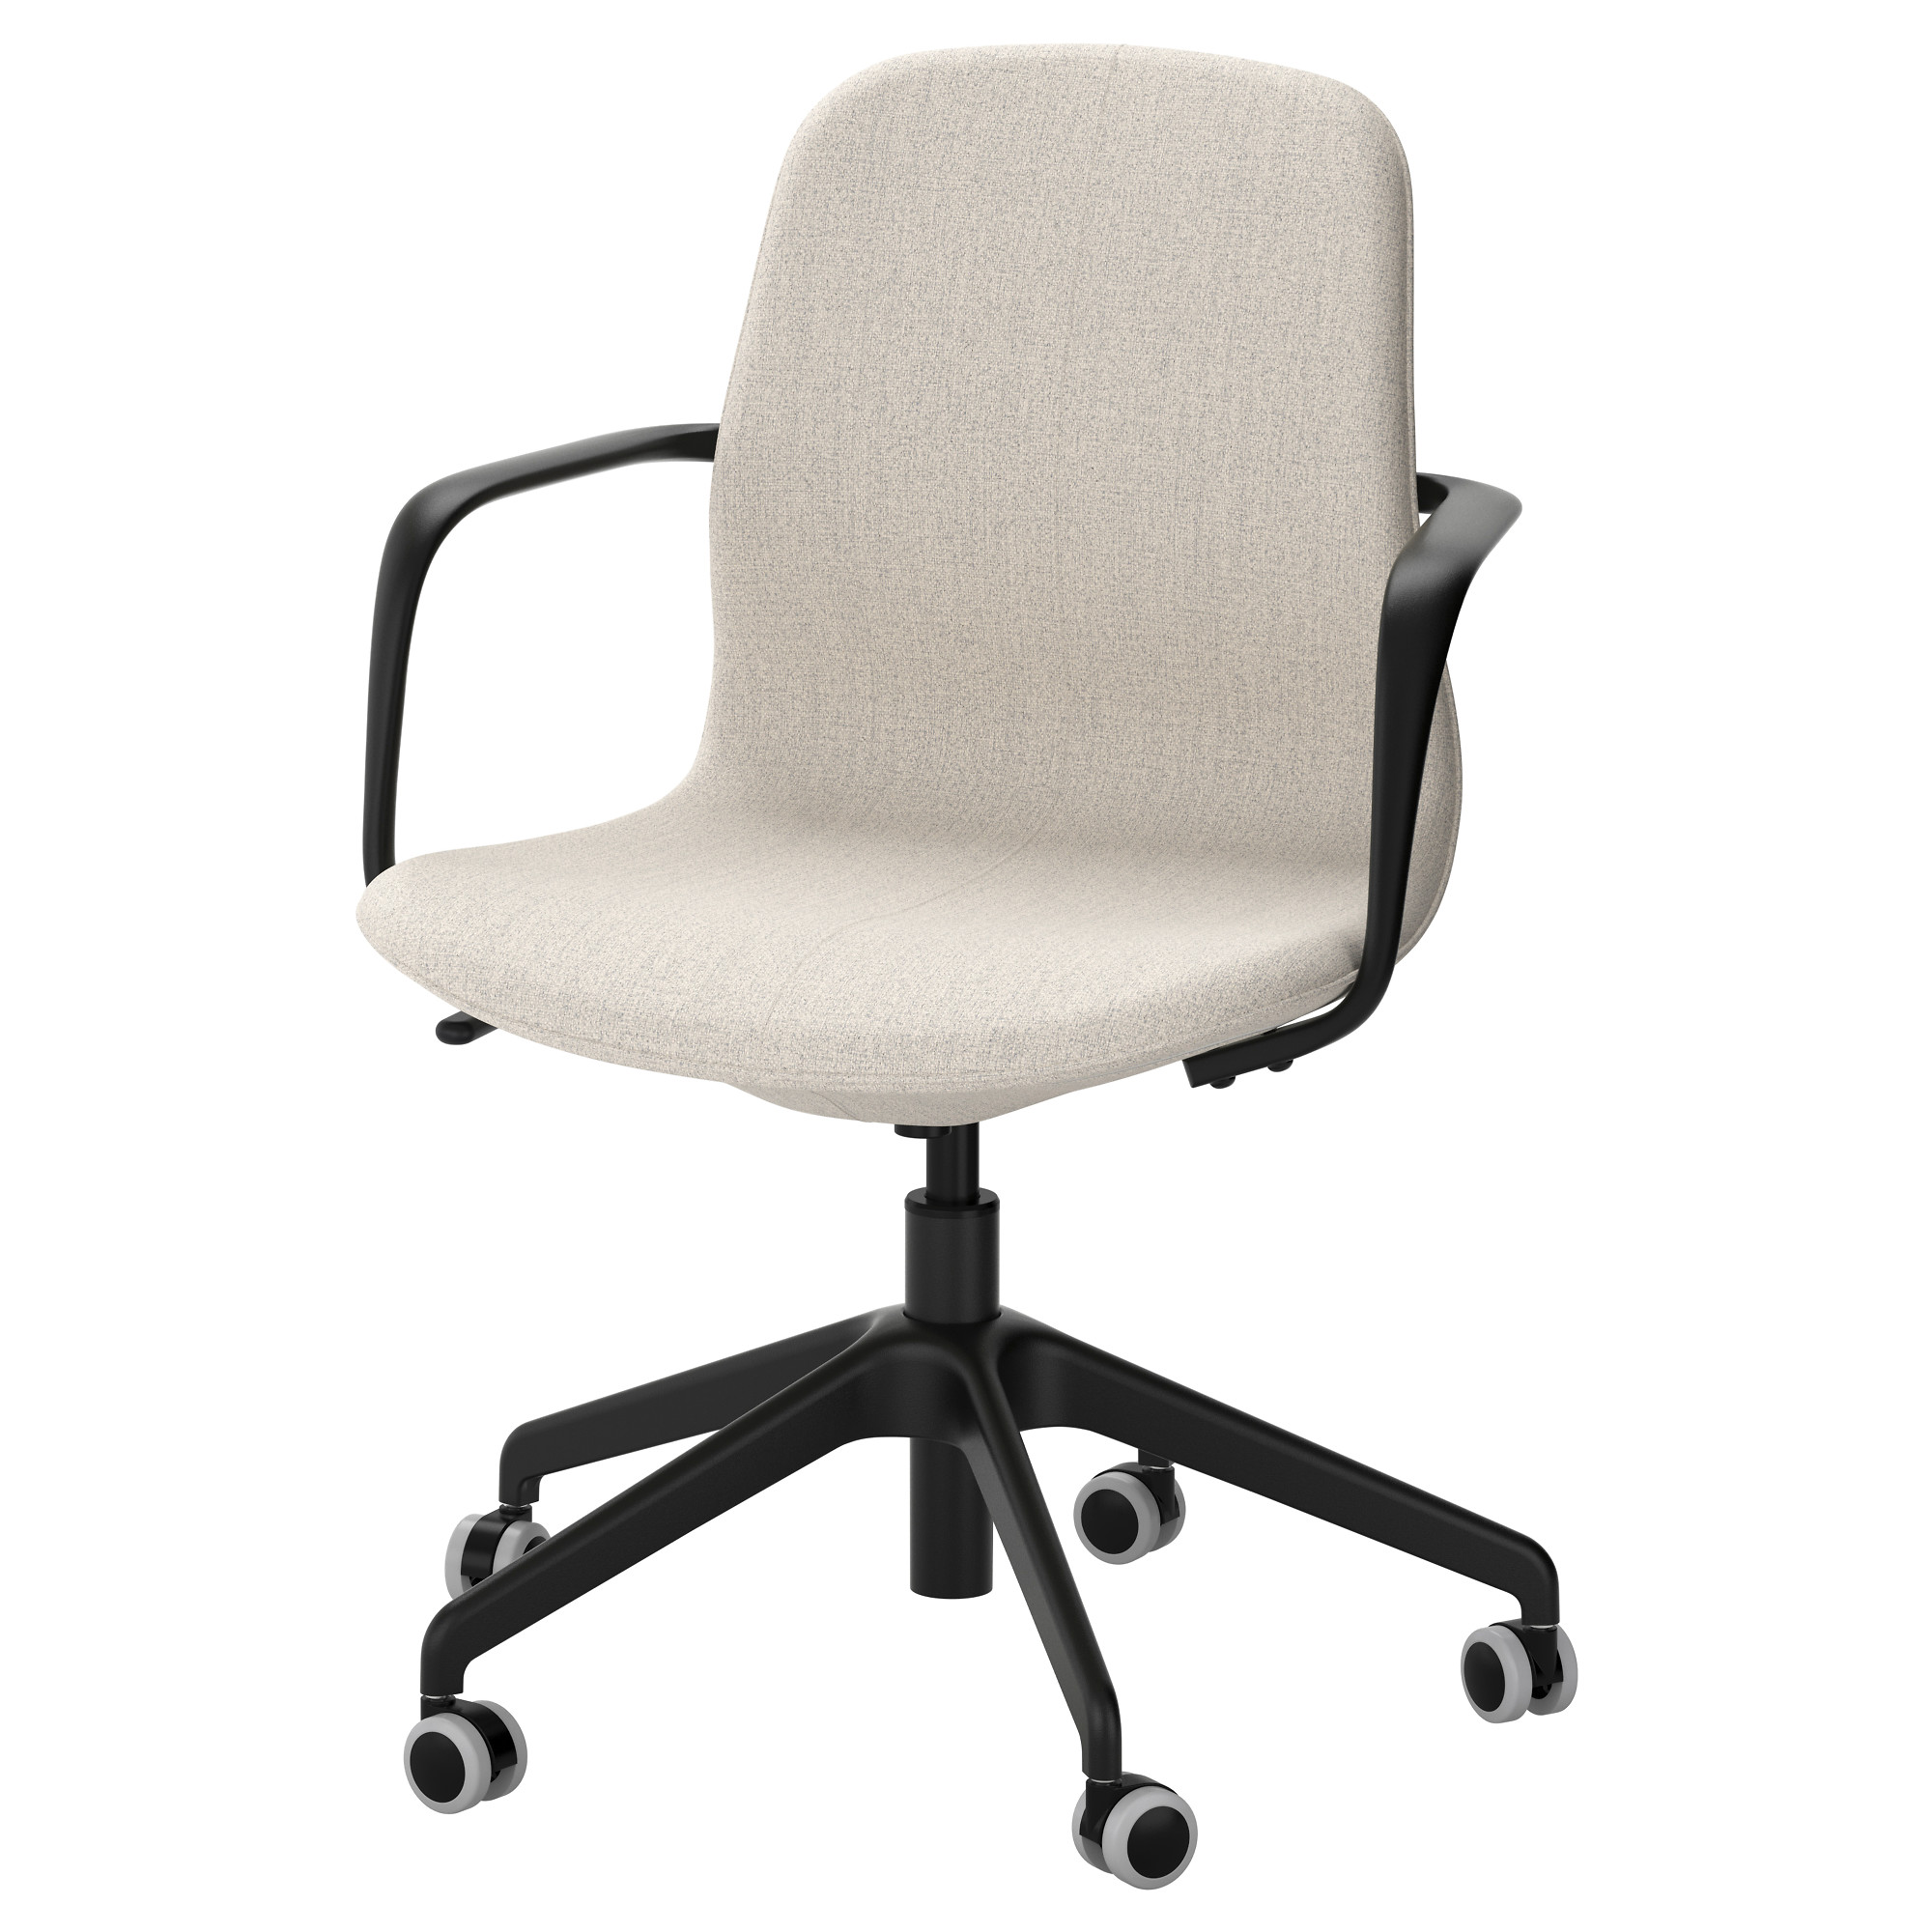 White Rolling Chair Office Chairs Ikea